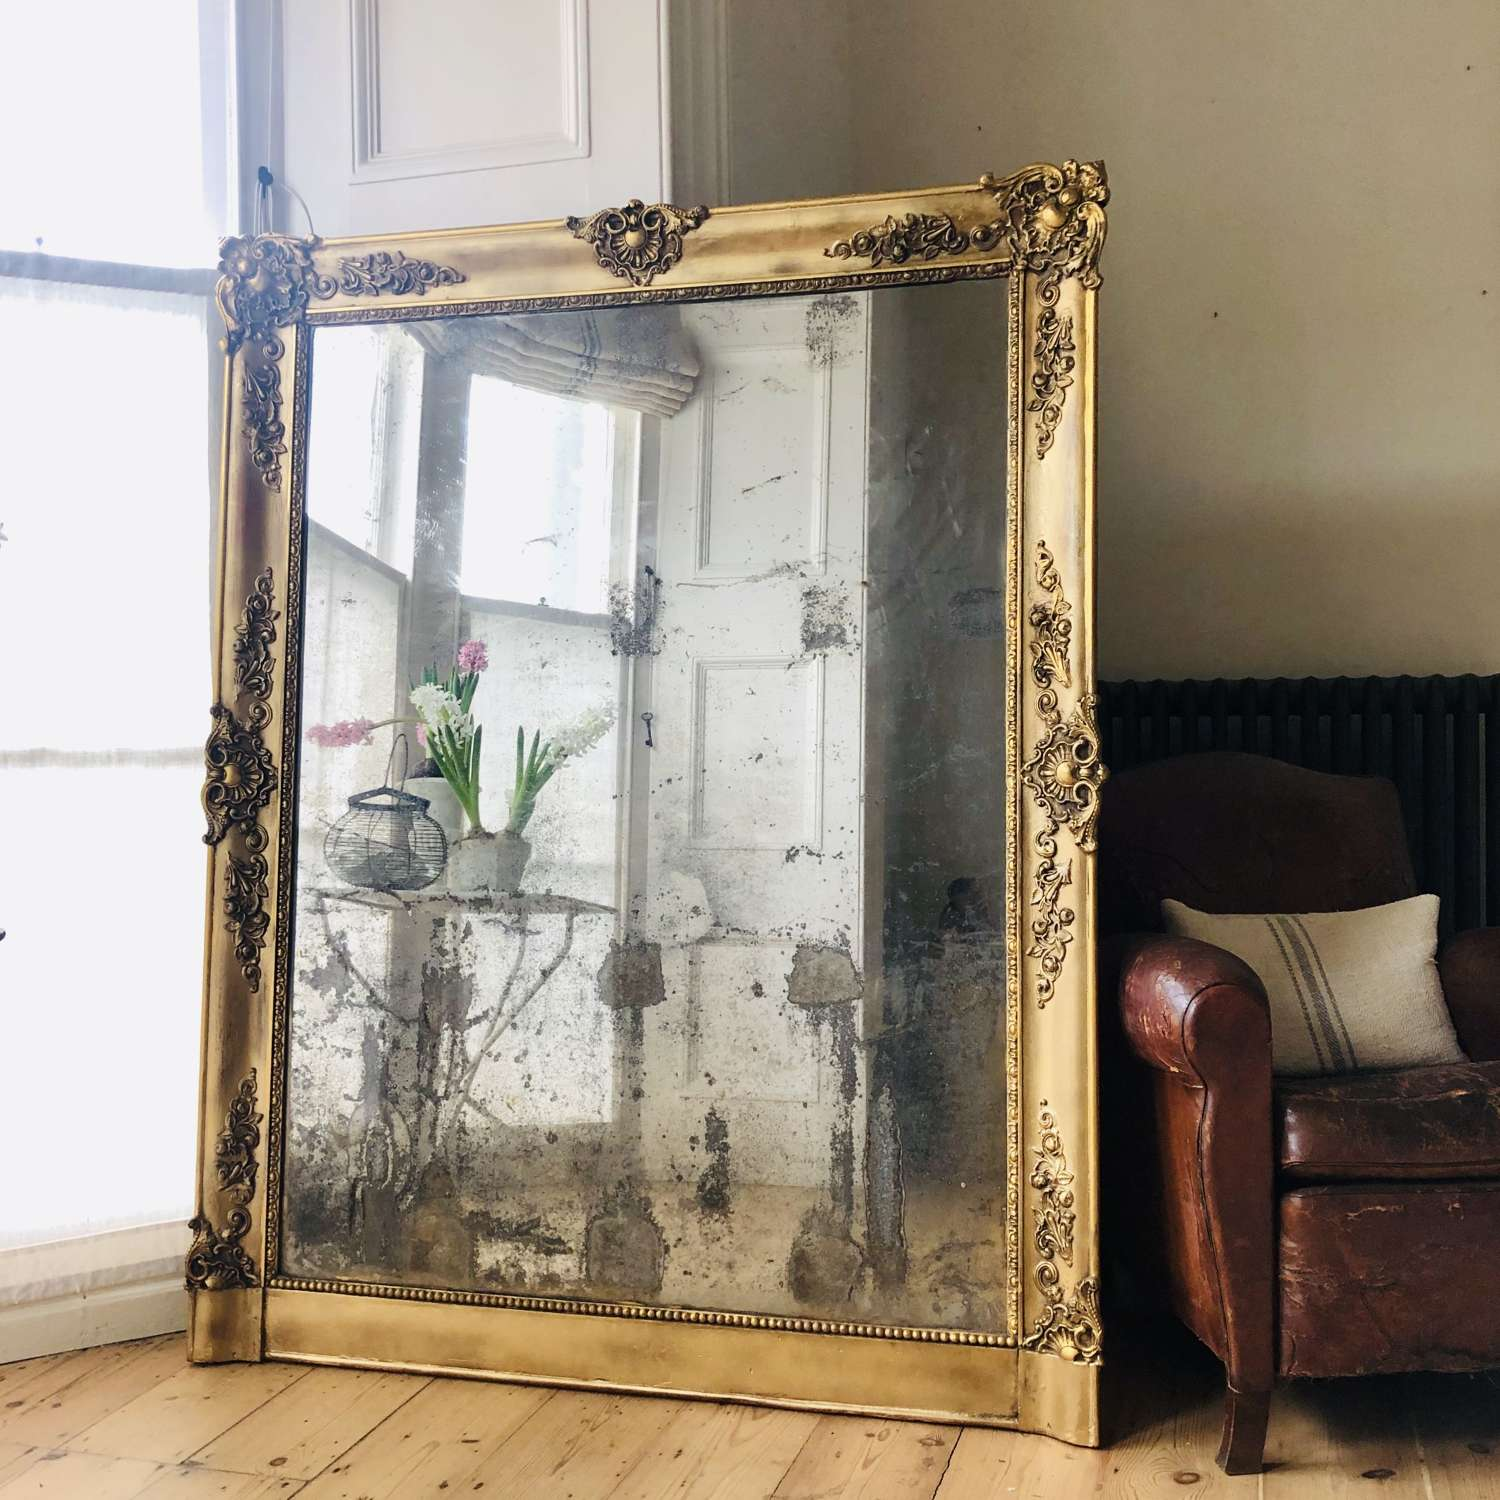 Large French antique gilt mirror - foxed / distressed mercury glass